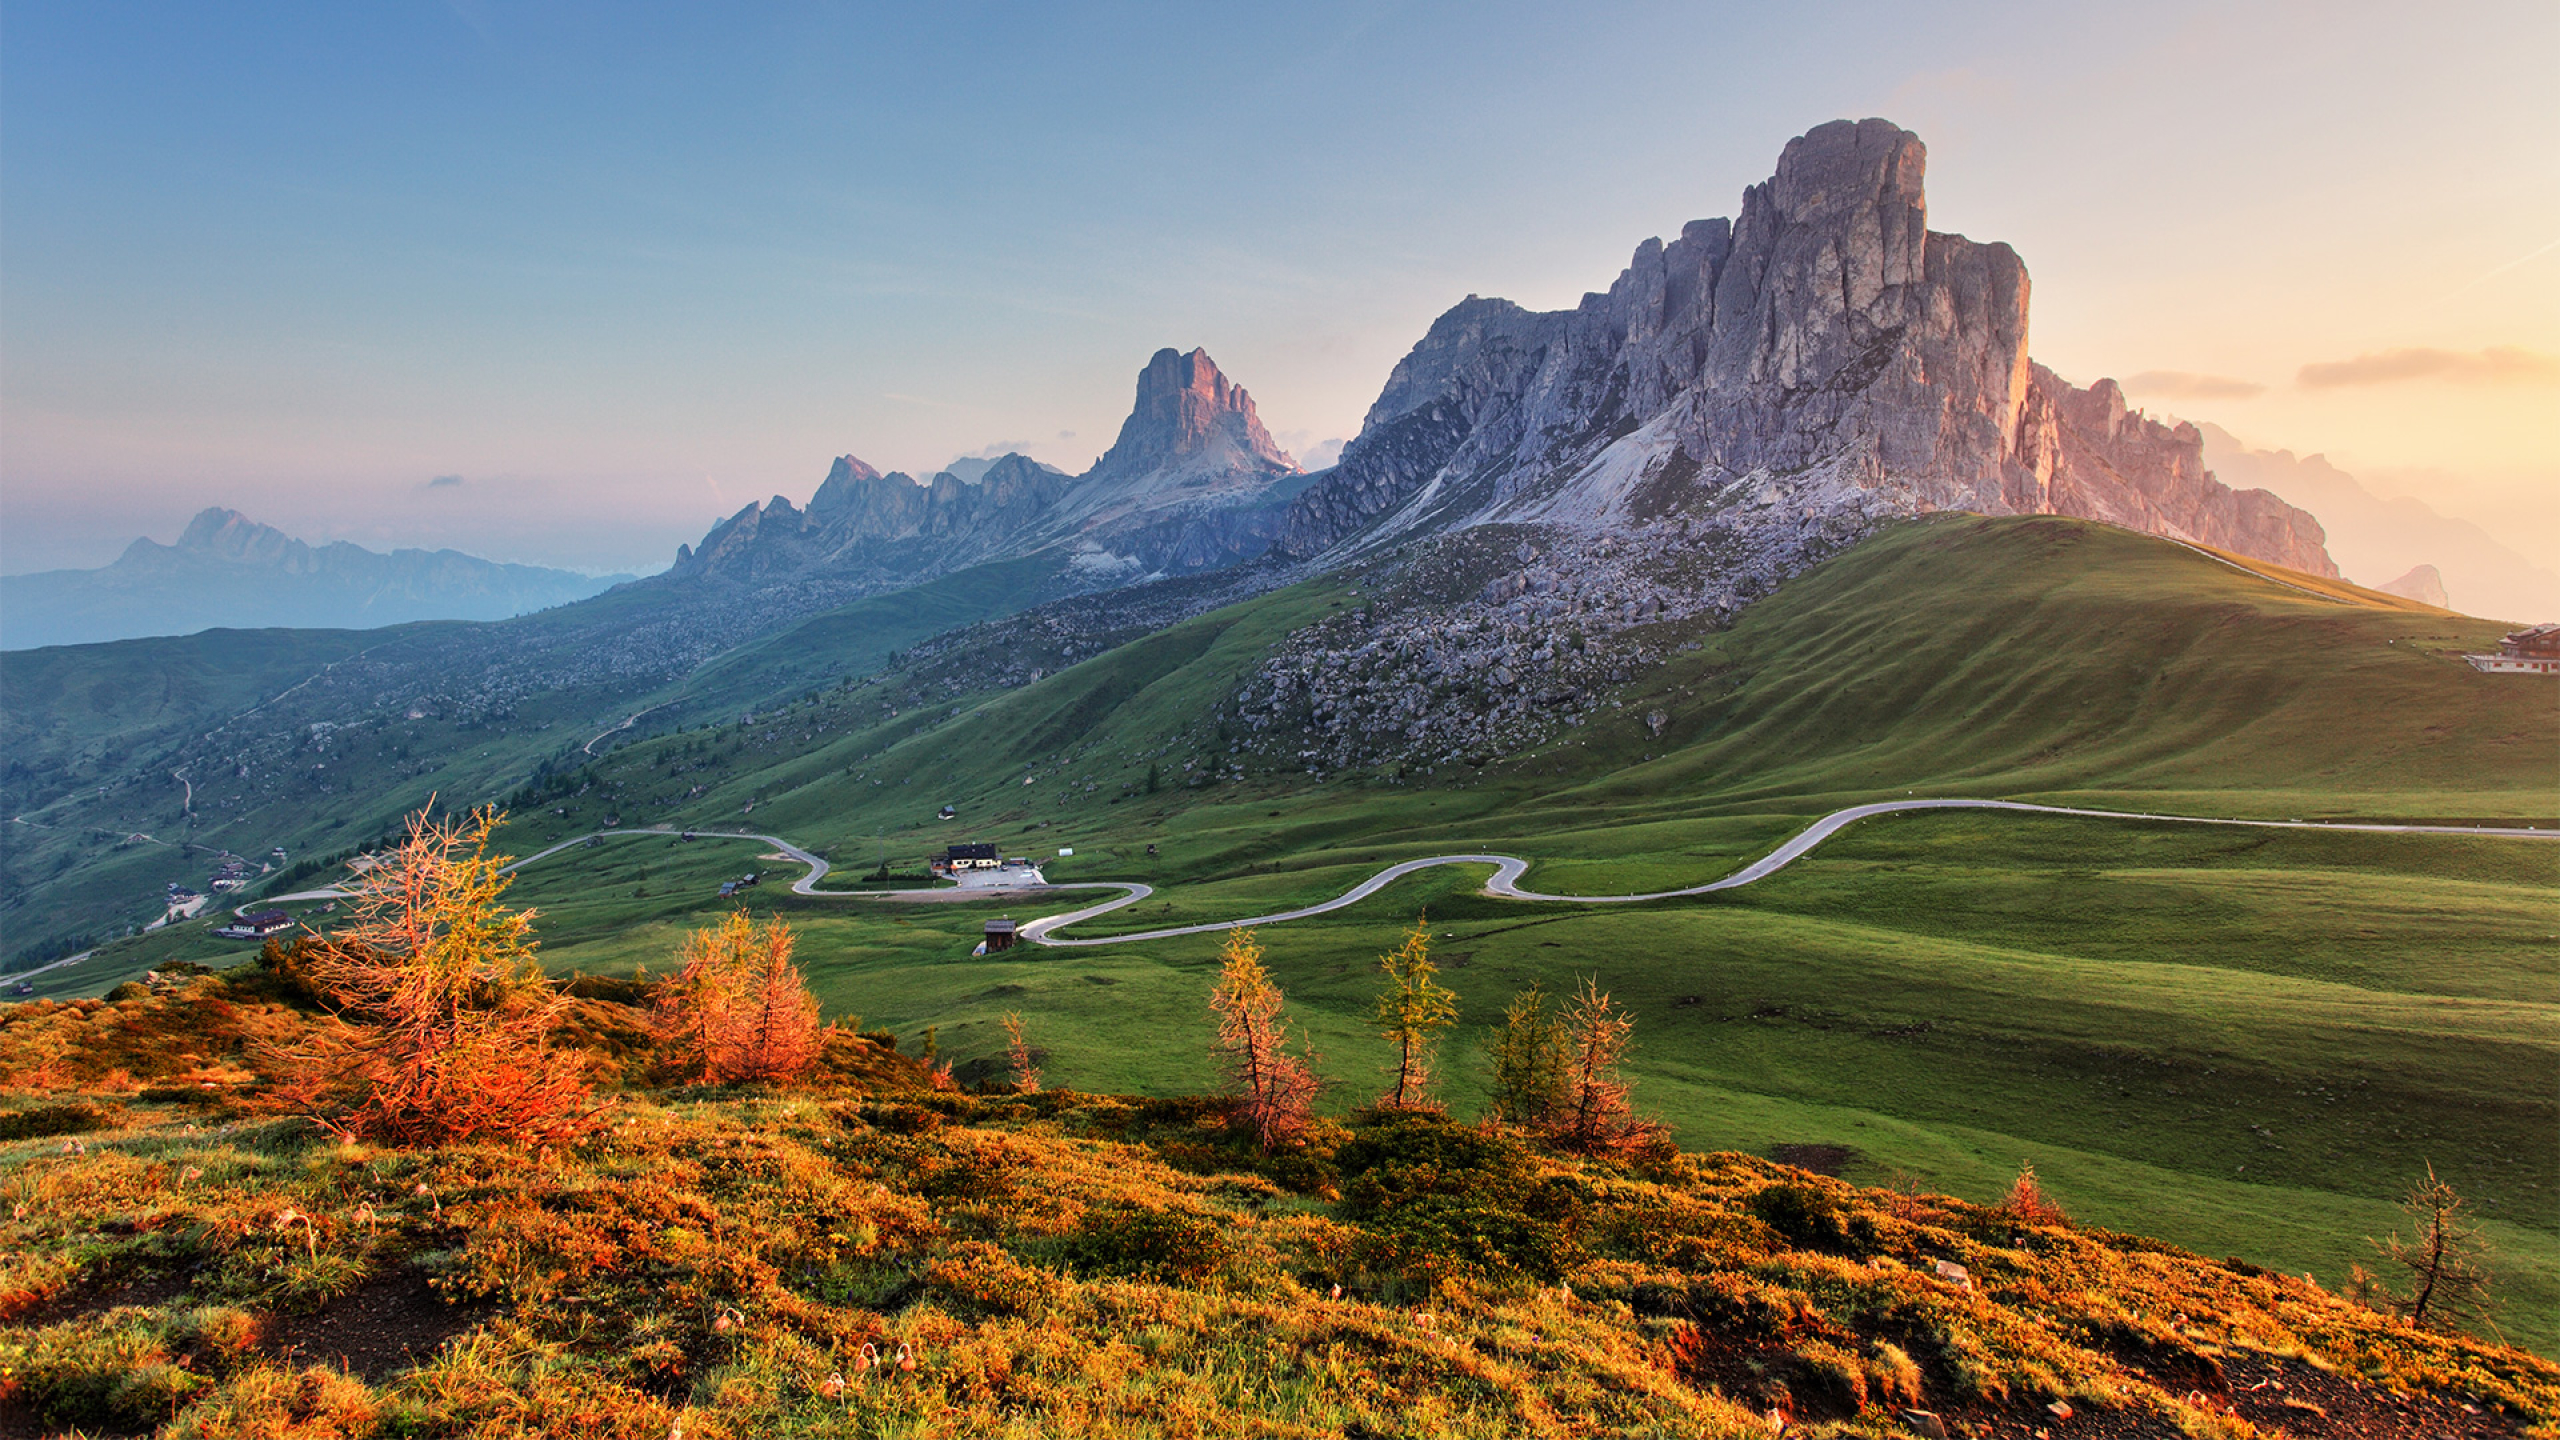 2560x1440 Giau Pass Italy 1440p Resolution Wallpaper Hd City 4k Wallpapers Images Photos And Background